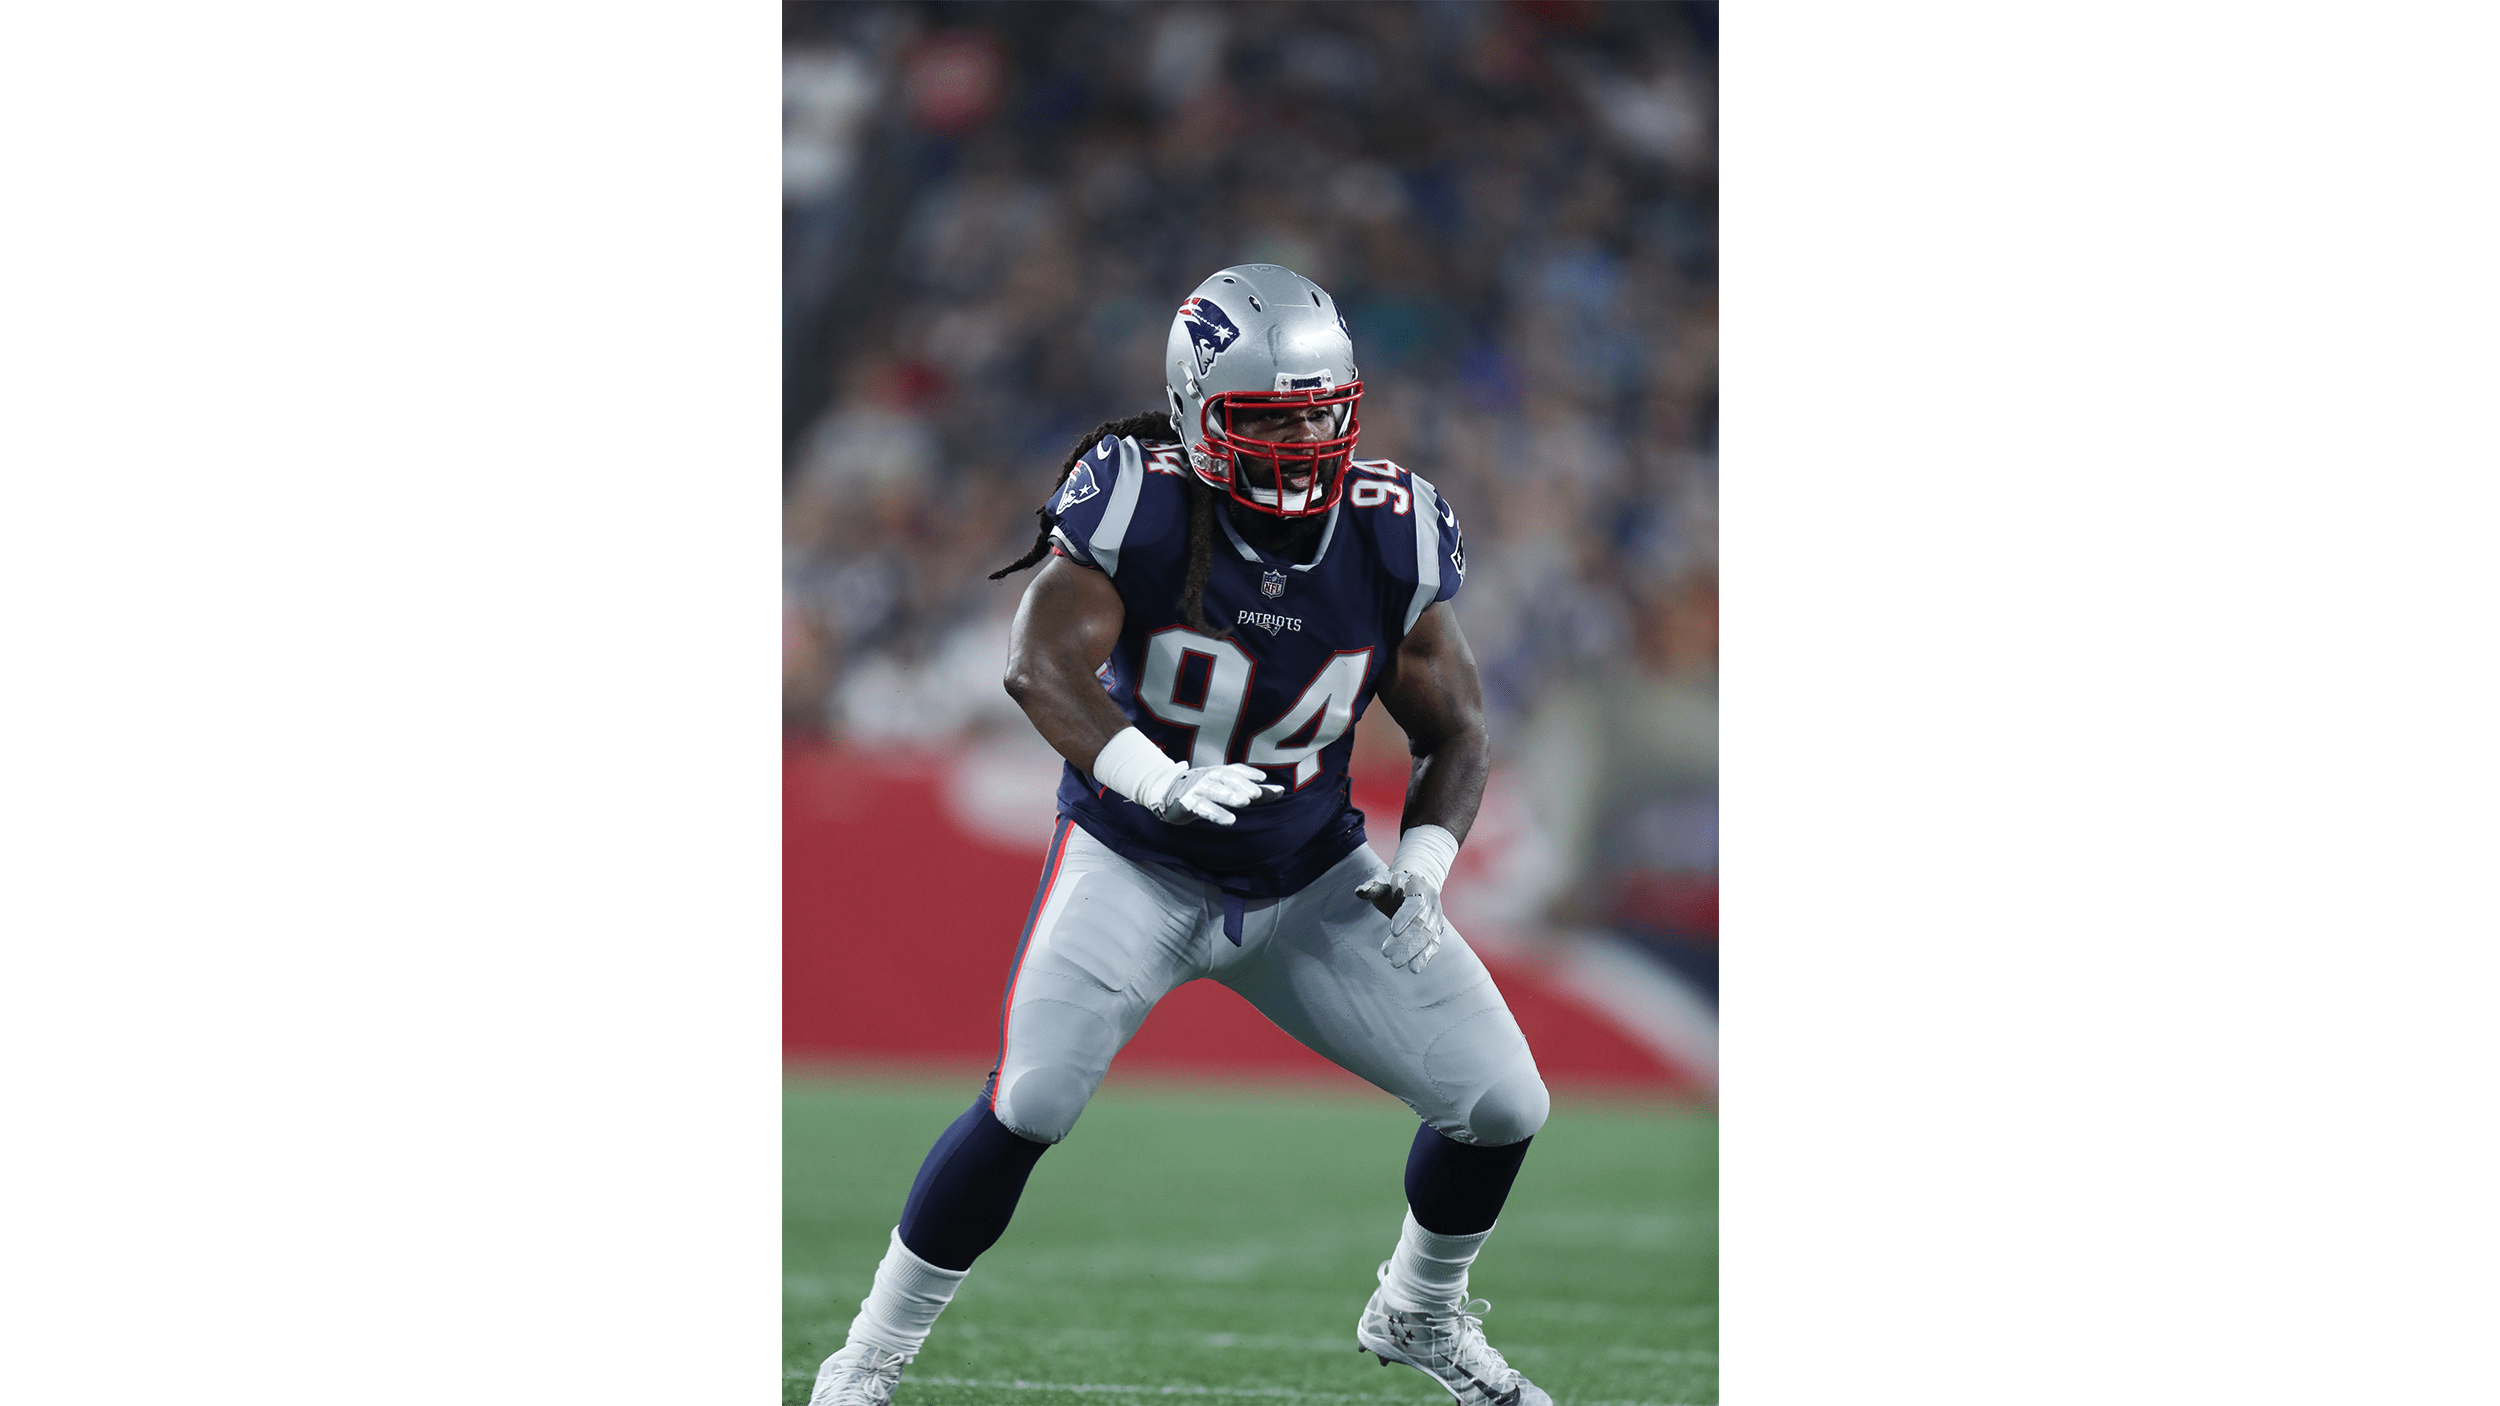 DE Adrian Clayborn | Brachial Plexus Injury Awareness